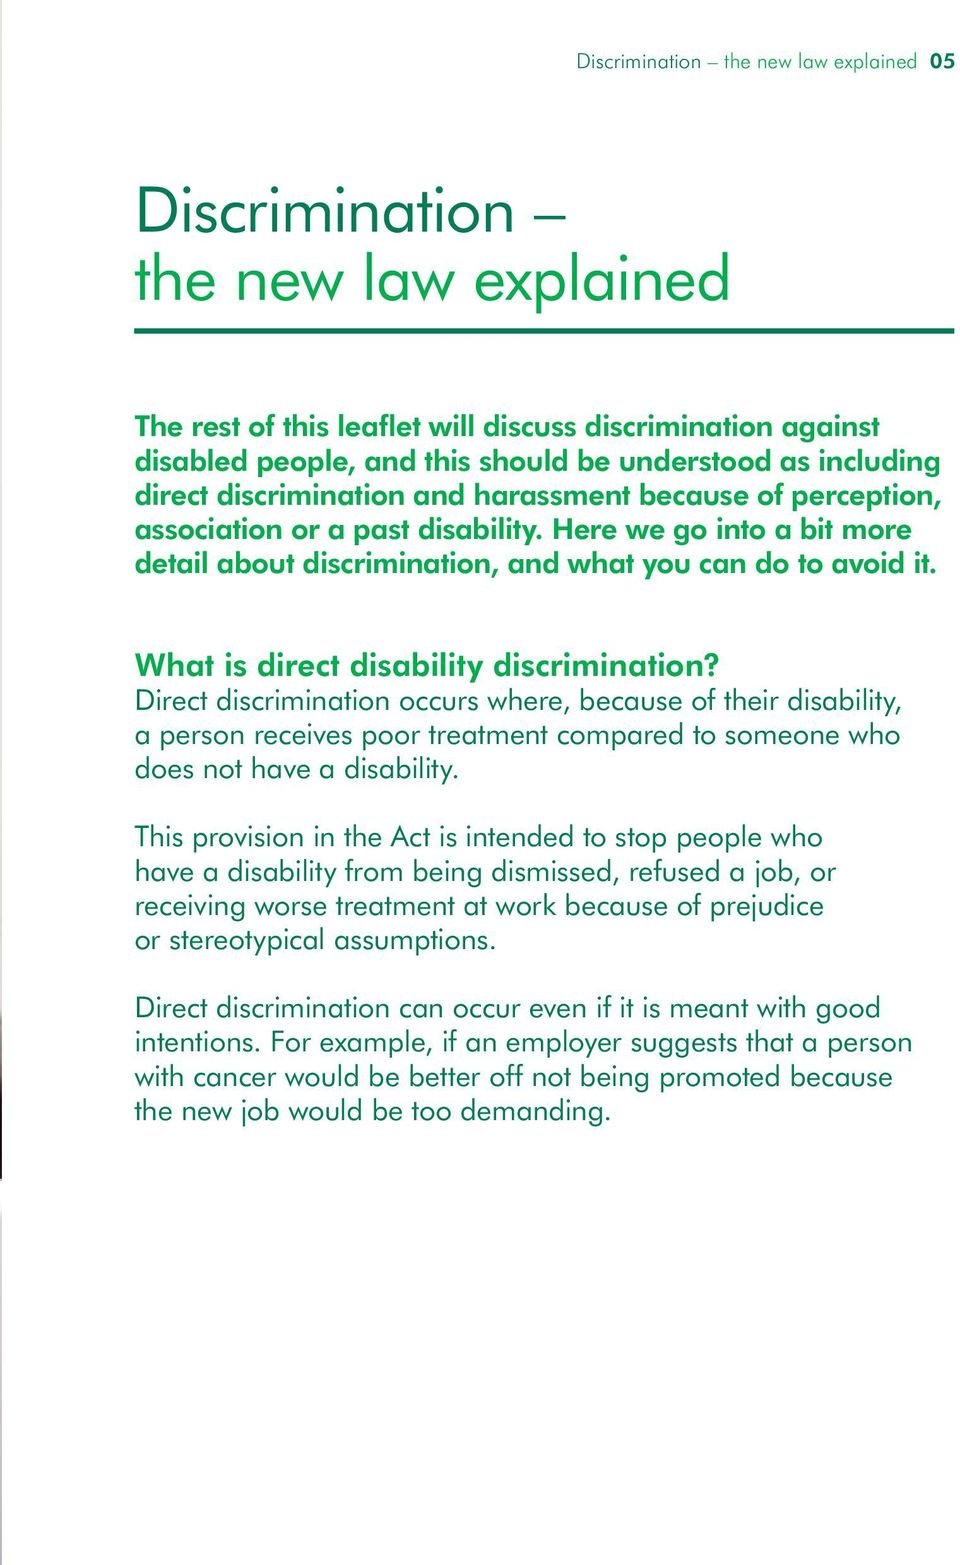 What is direct disability discrimination? Direct discrimination occurs where, because of their disability, a person receives poor treatment compared to someone who does not have a disability.